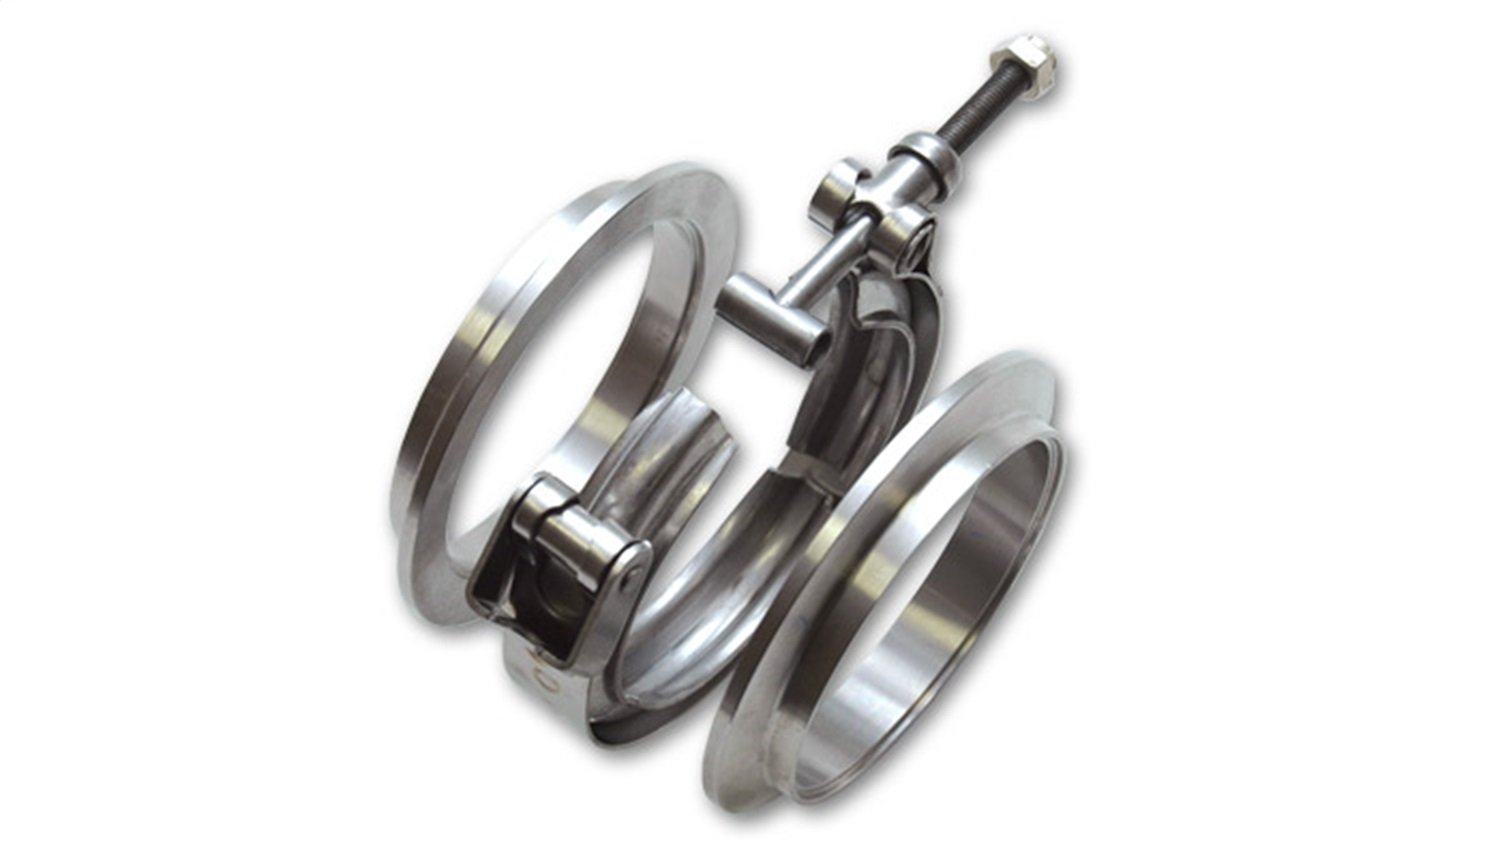 Vibrant 1490 2.5' Stainless Steel V-Band Flange Assembly KEYU1 VIB1490